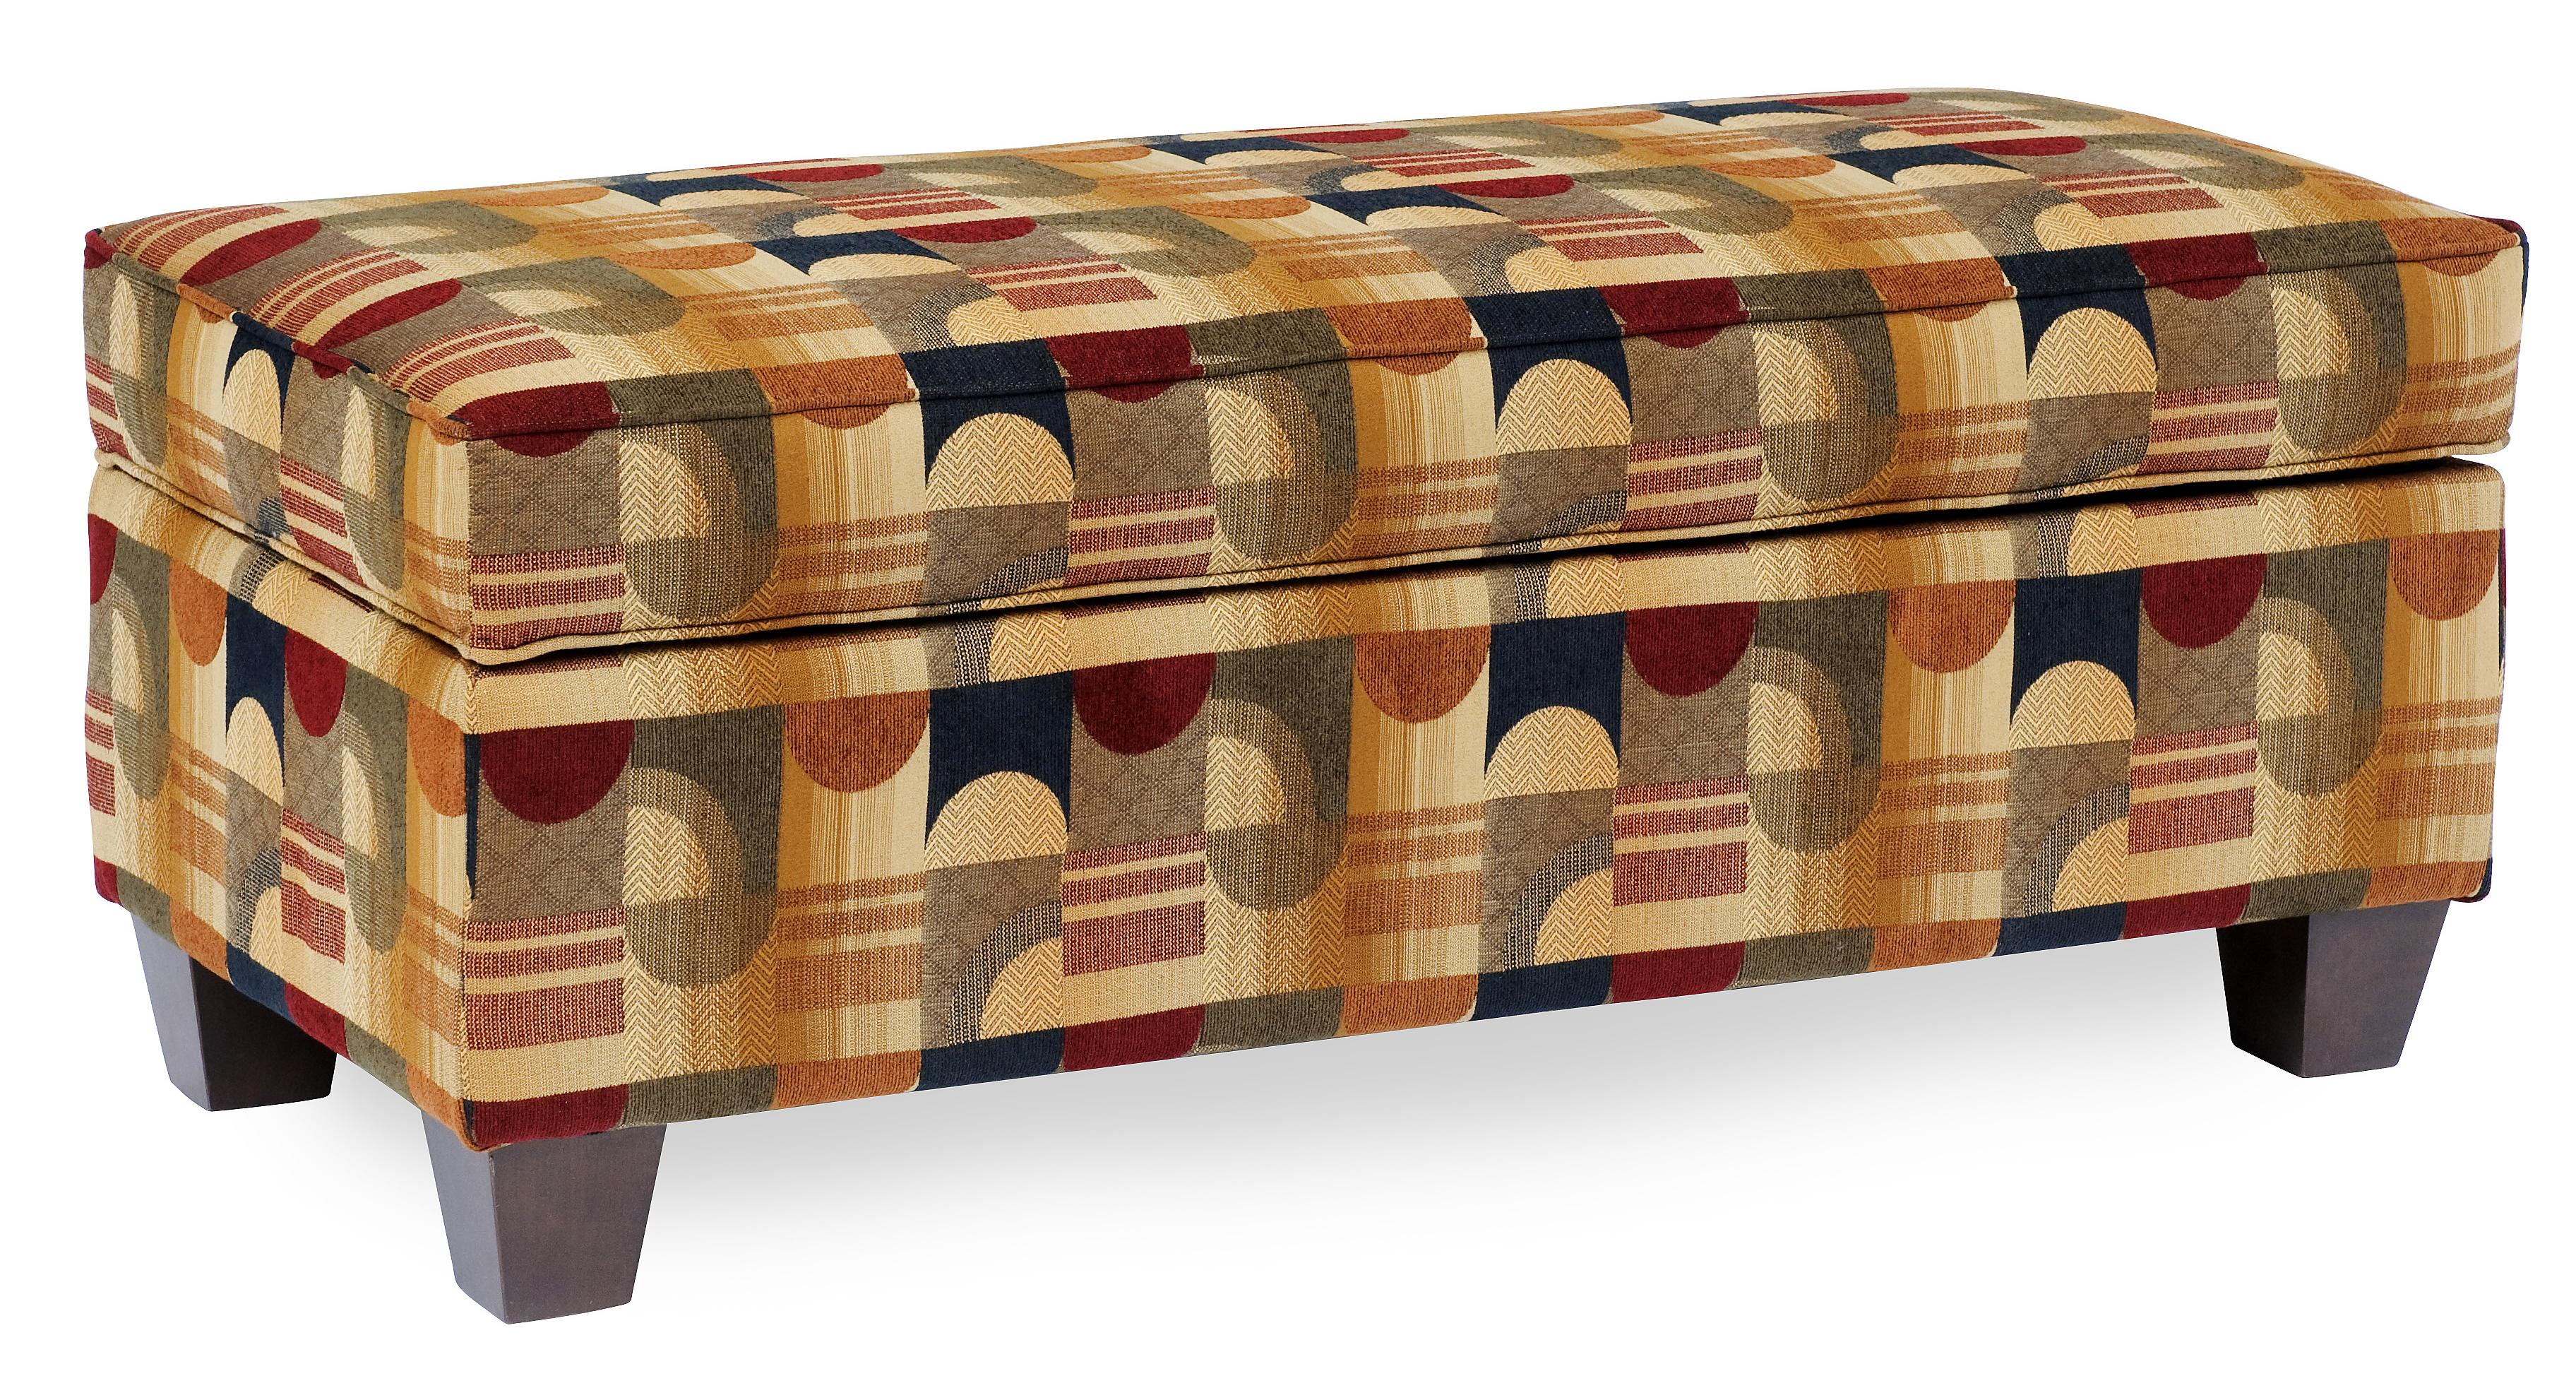 Beau Rectangular Storage Ottoman With Tapered Legs